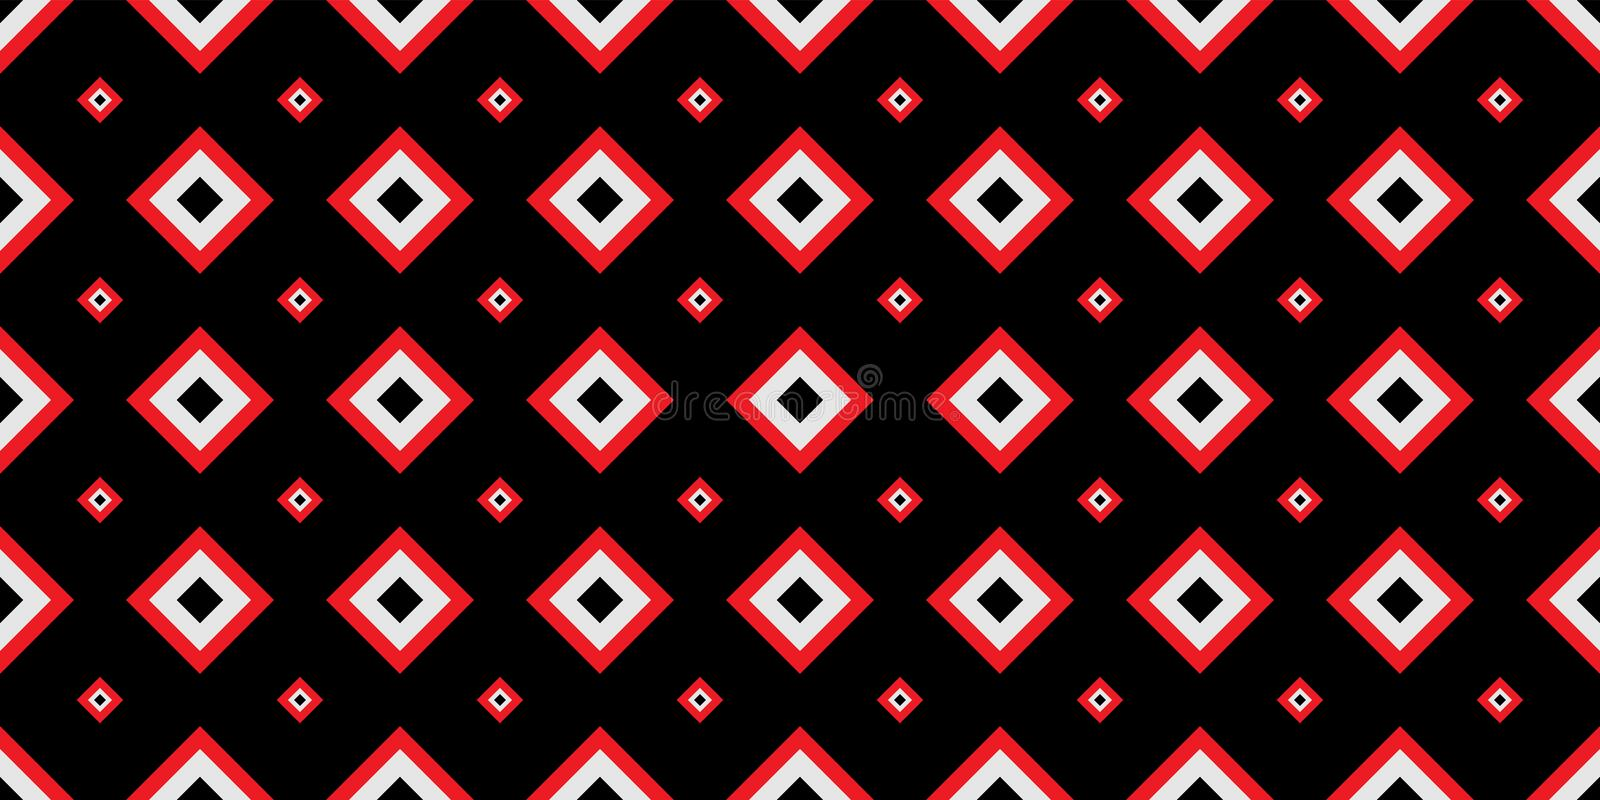 Seamless geometric pattern. Red and black colors are Modern casual colors vector illustration